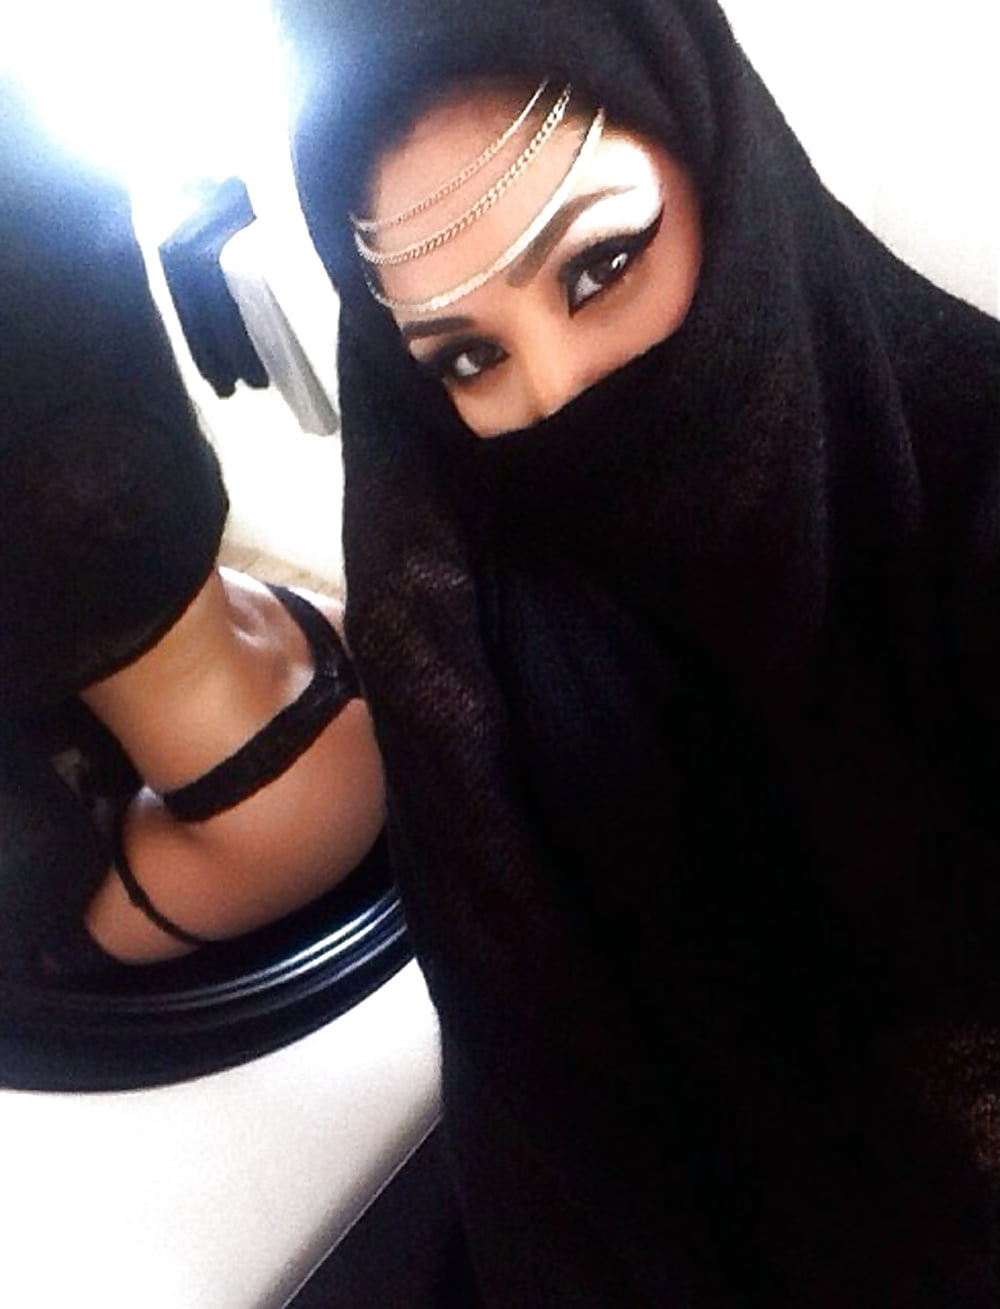 Sex hijab picture